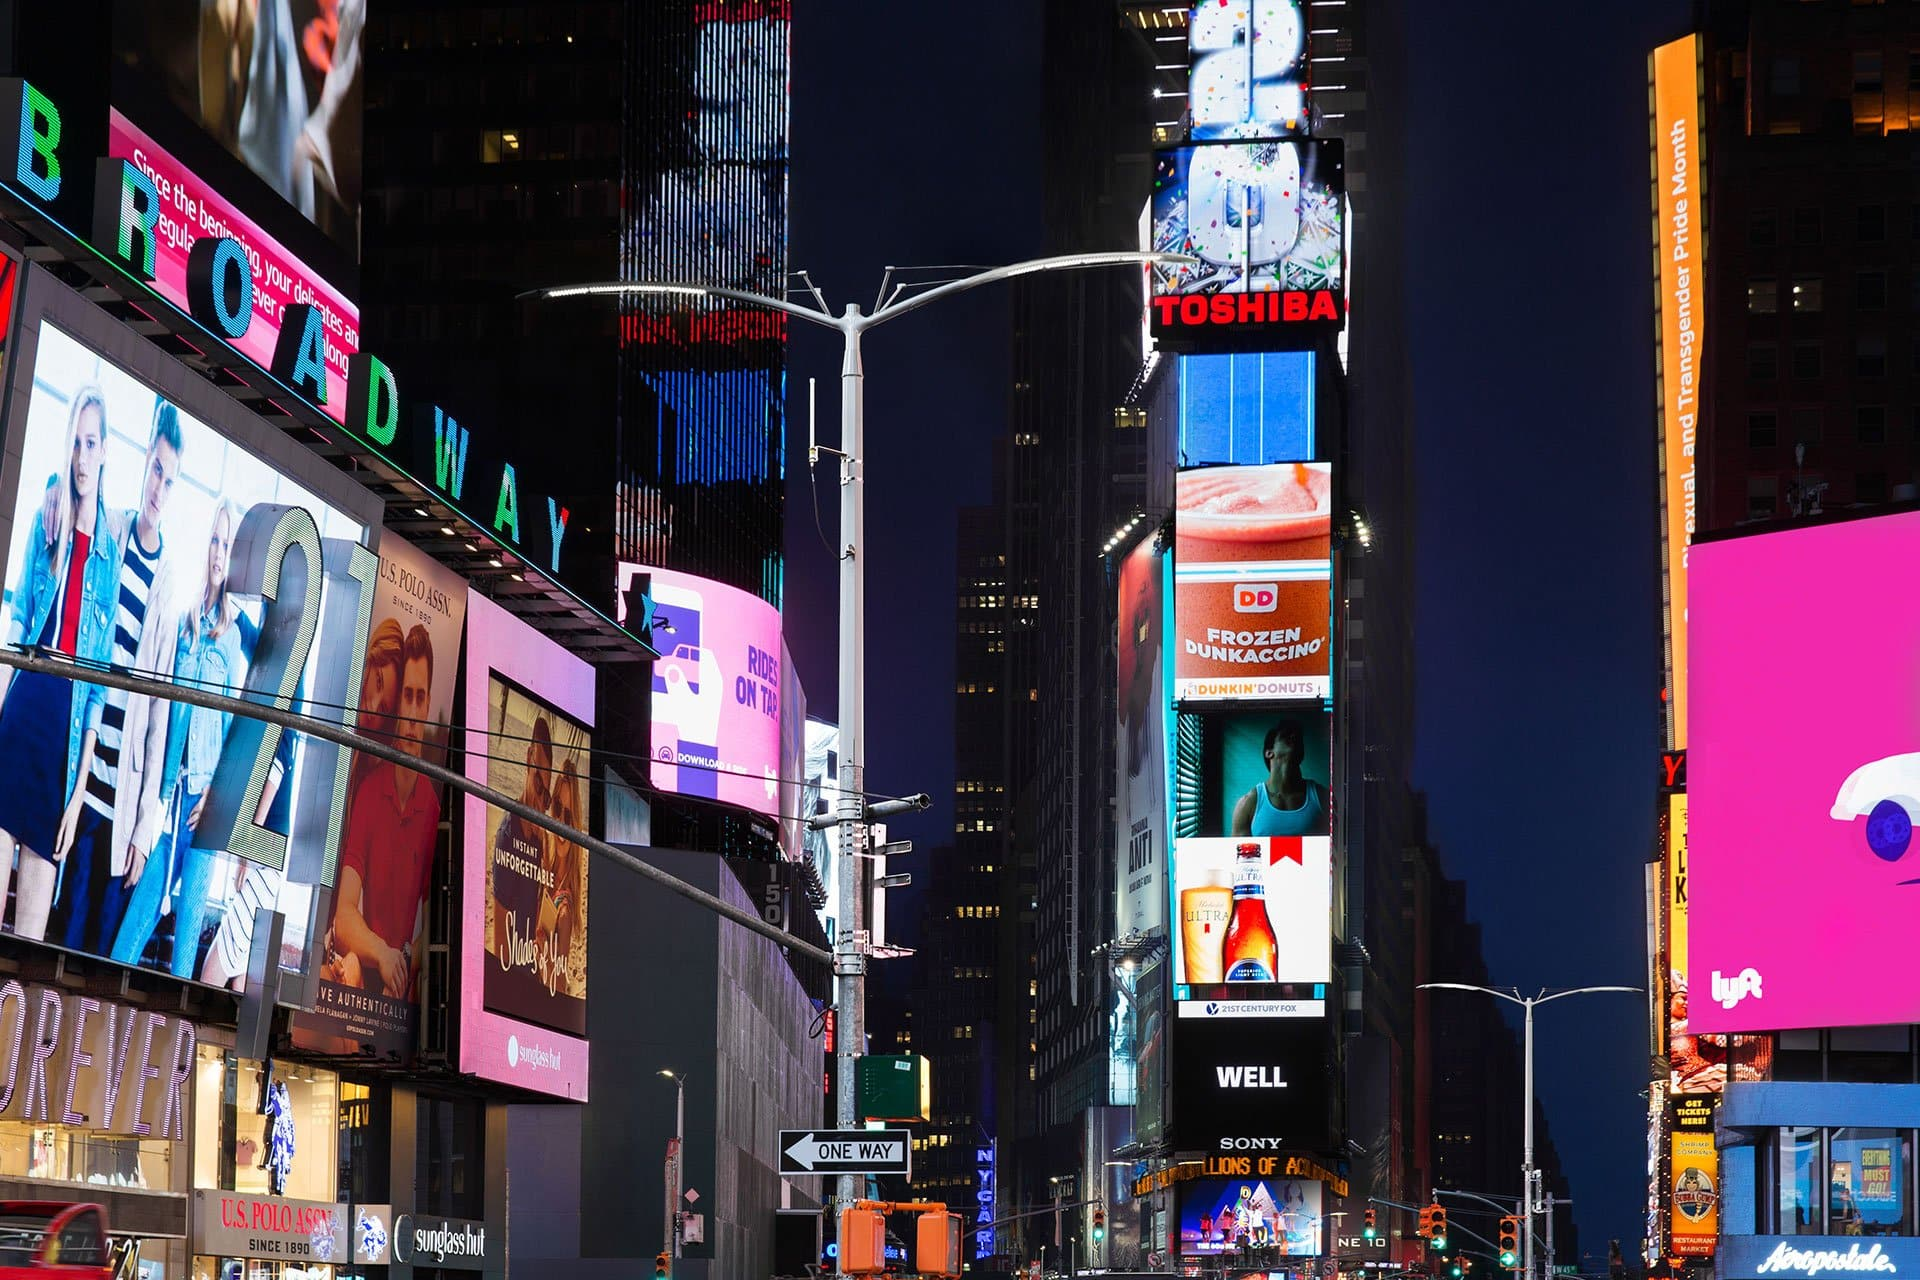 NYC streetlight project features OVI work and the use of LED technology.